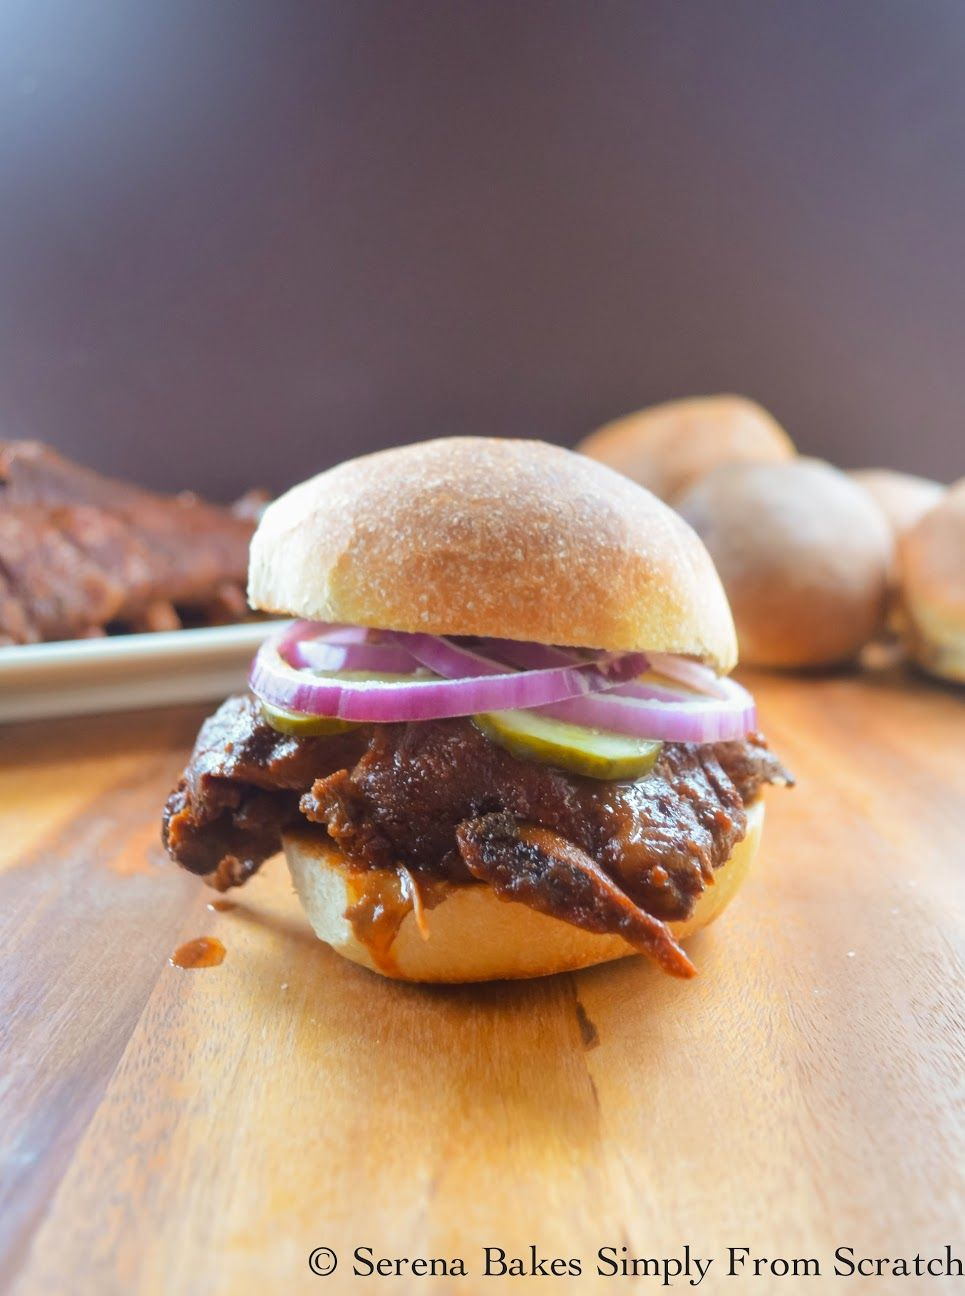 Crock Pot Baby Back Rib Sandwiches in Homemade BBQ Sauce an easy delicious meal from serenabakessimplyfromscratch.com